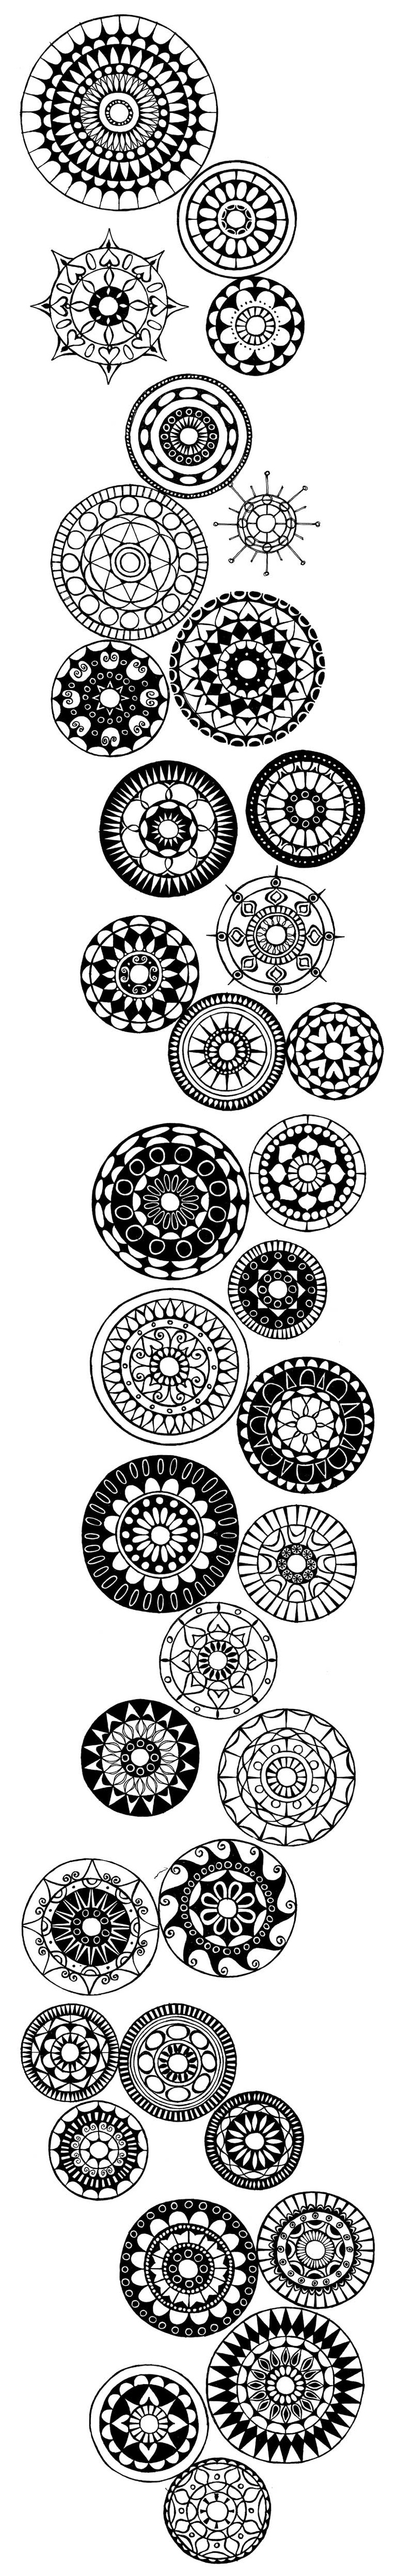 Zentangle Drawings, Mandala Art, Stone